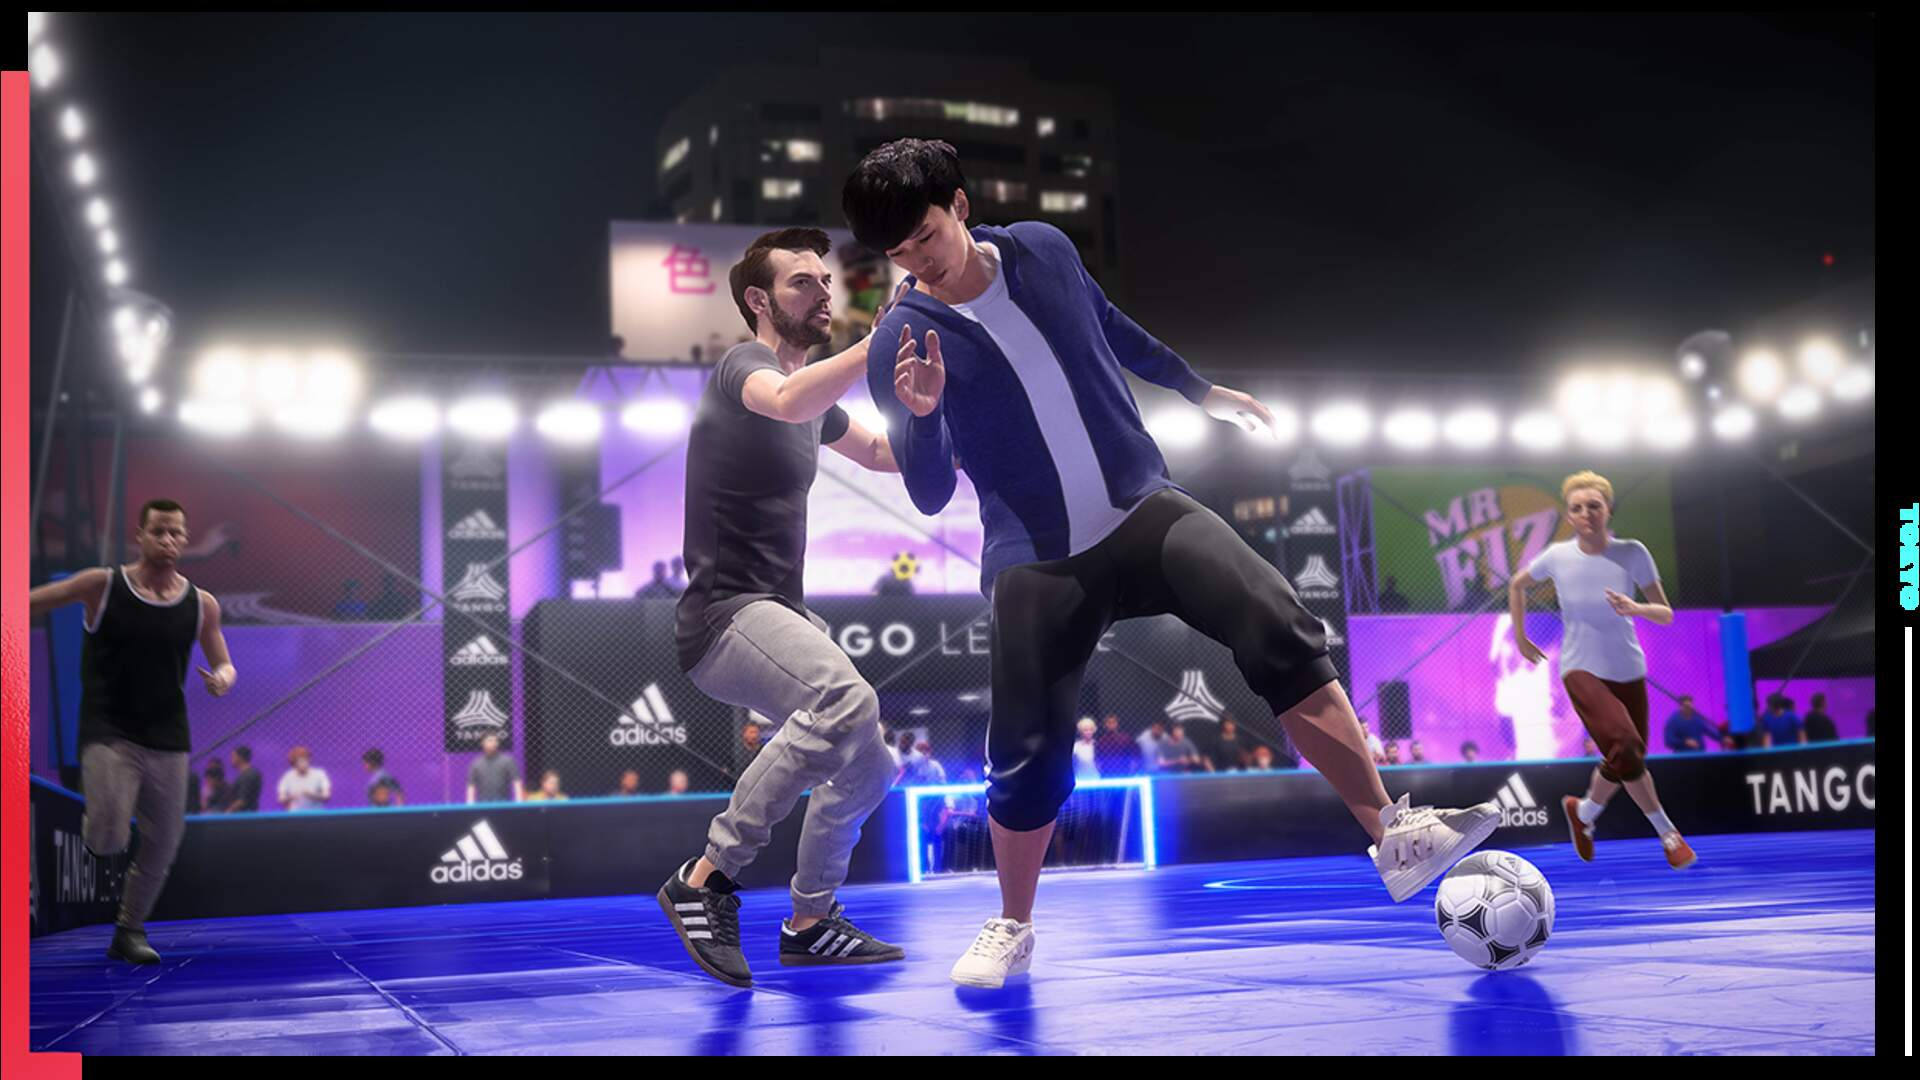 FIFA 20 Looks to Be Adding the Flavor of FIFA Street With the New Volta Mode